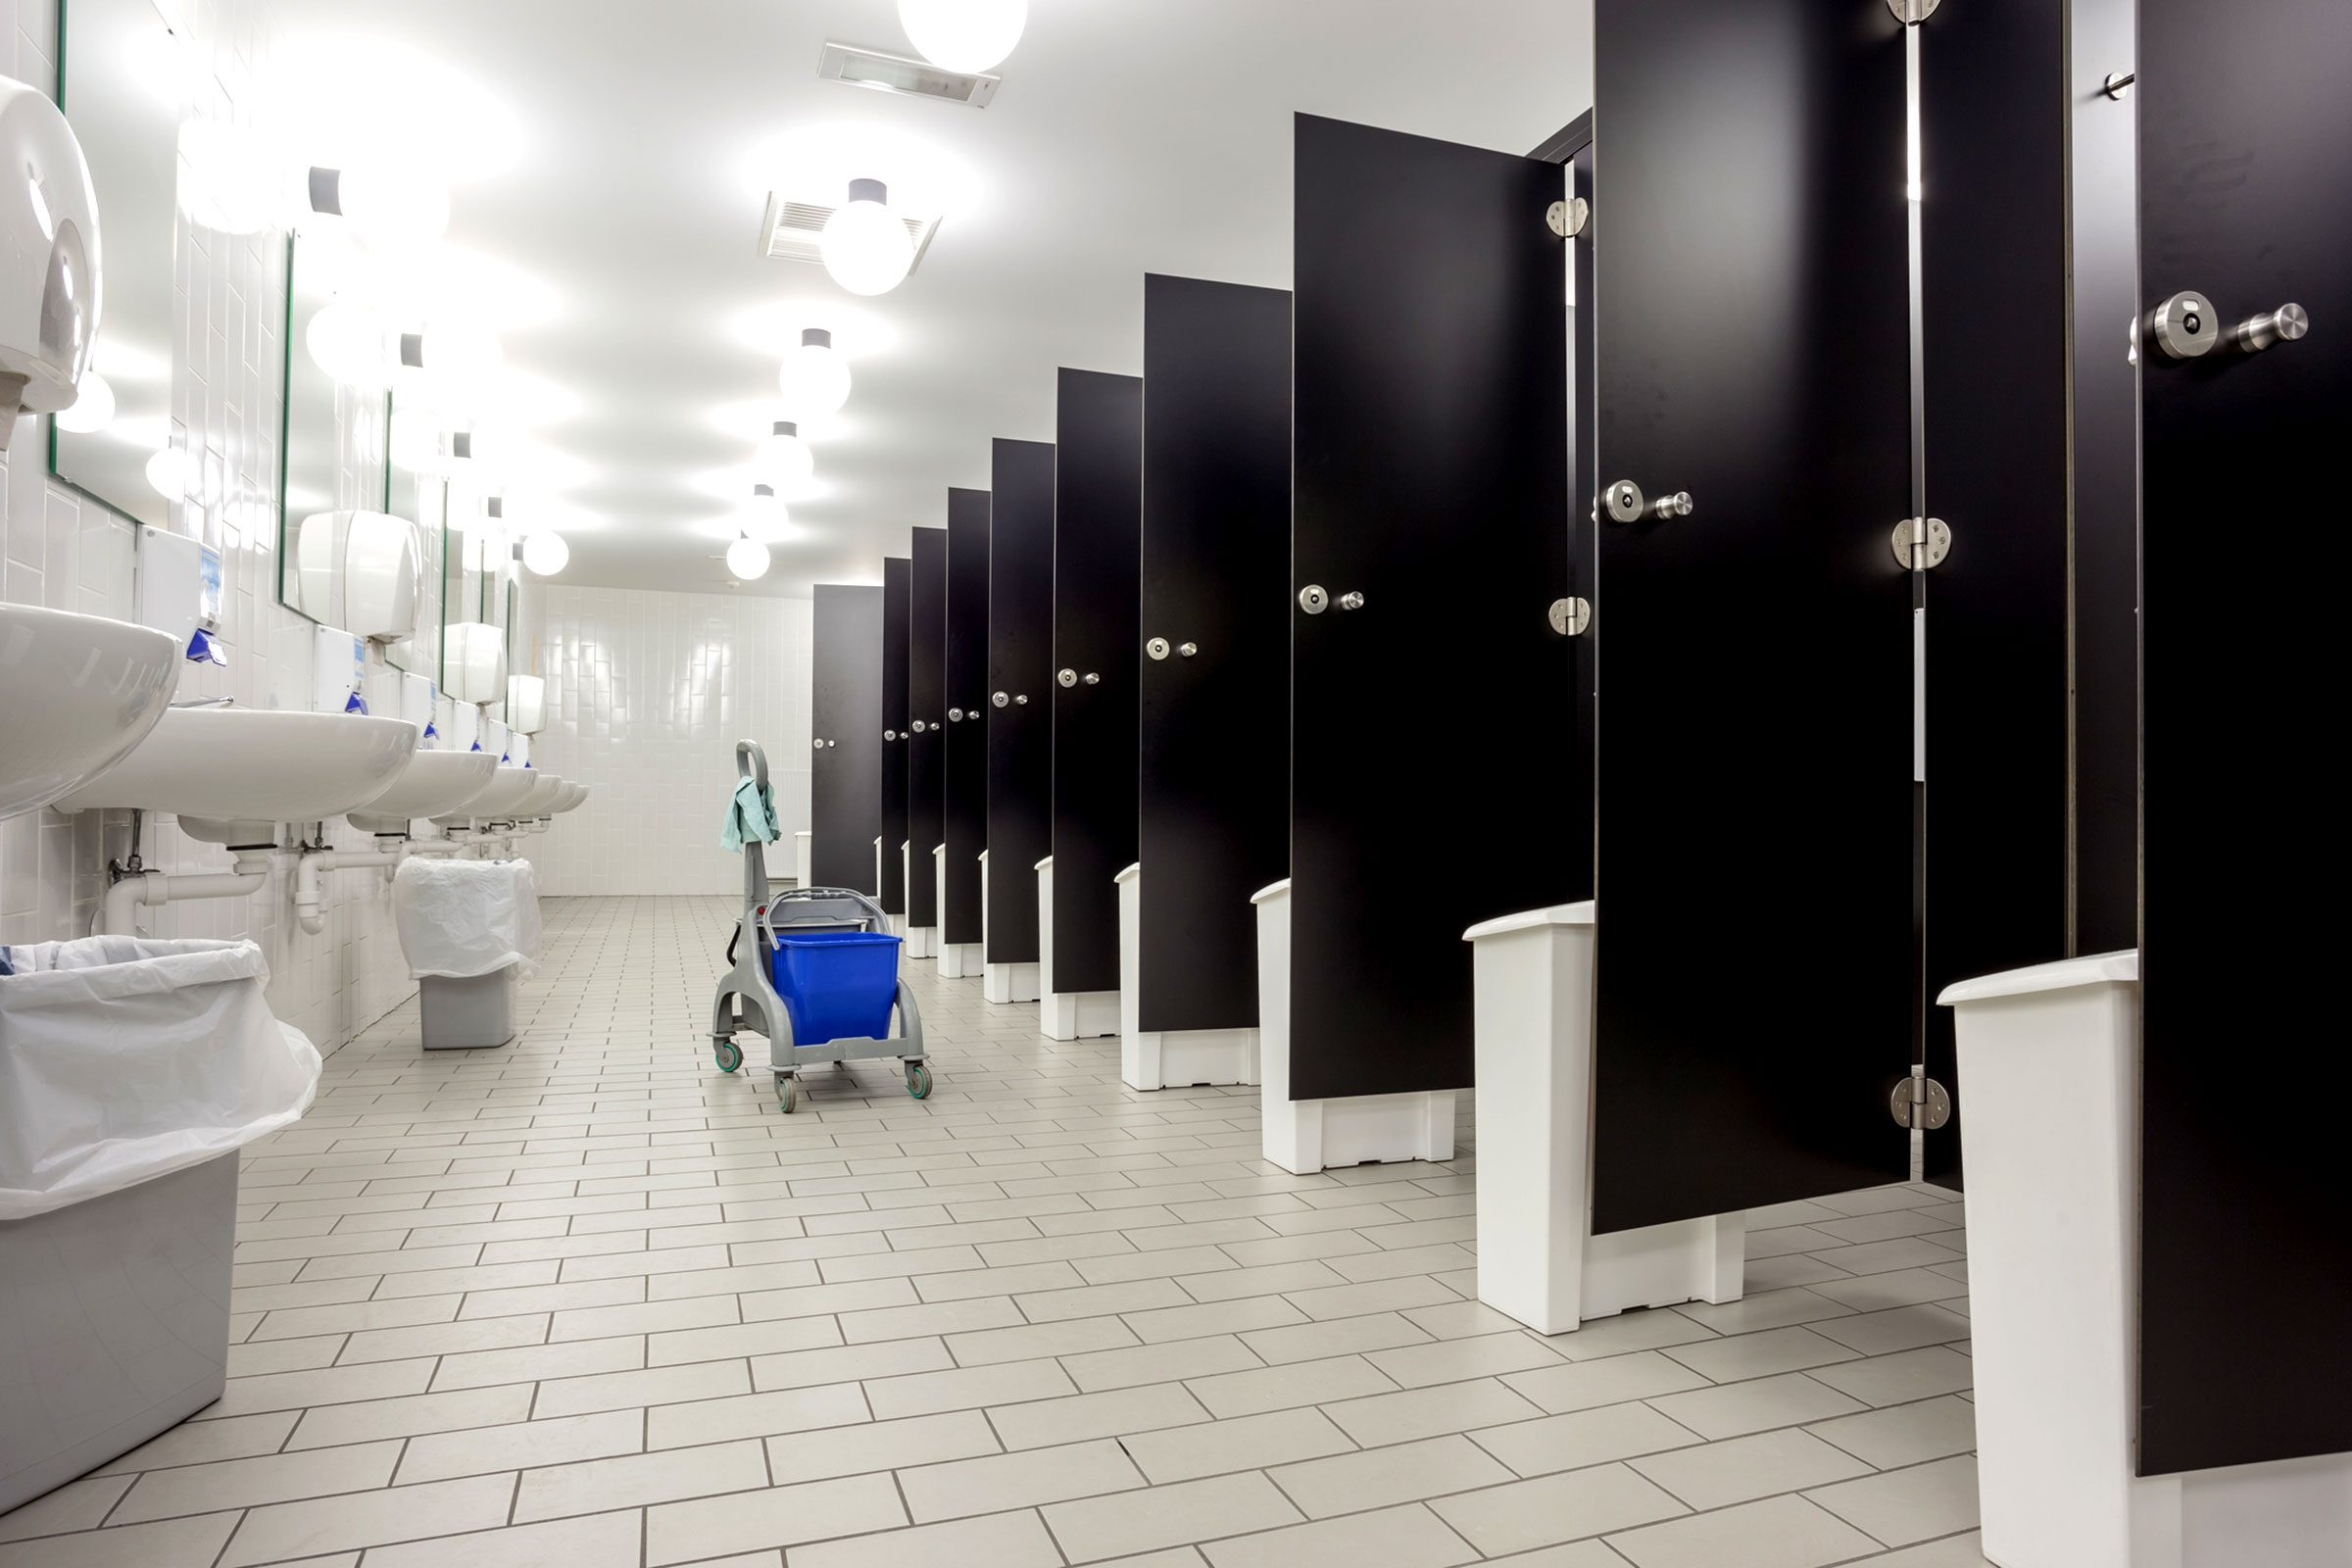 detailed overview what to do in a public bathroom offer wide